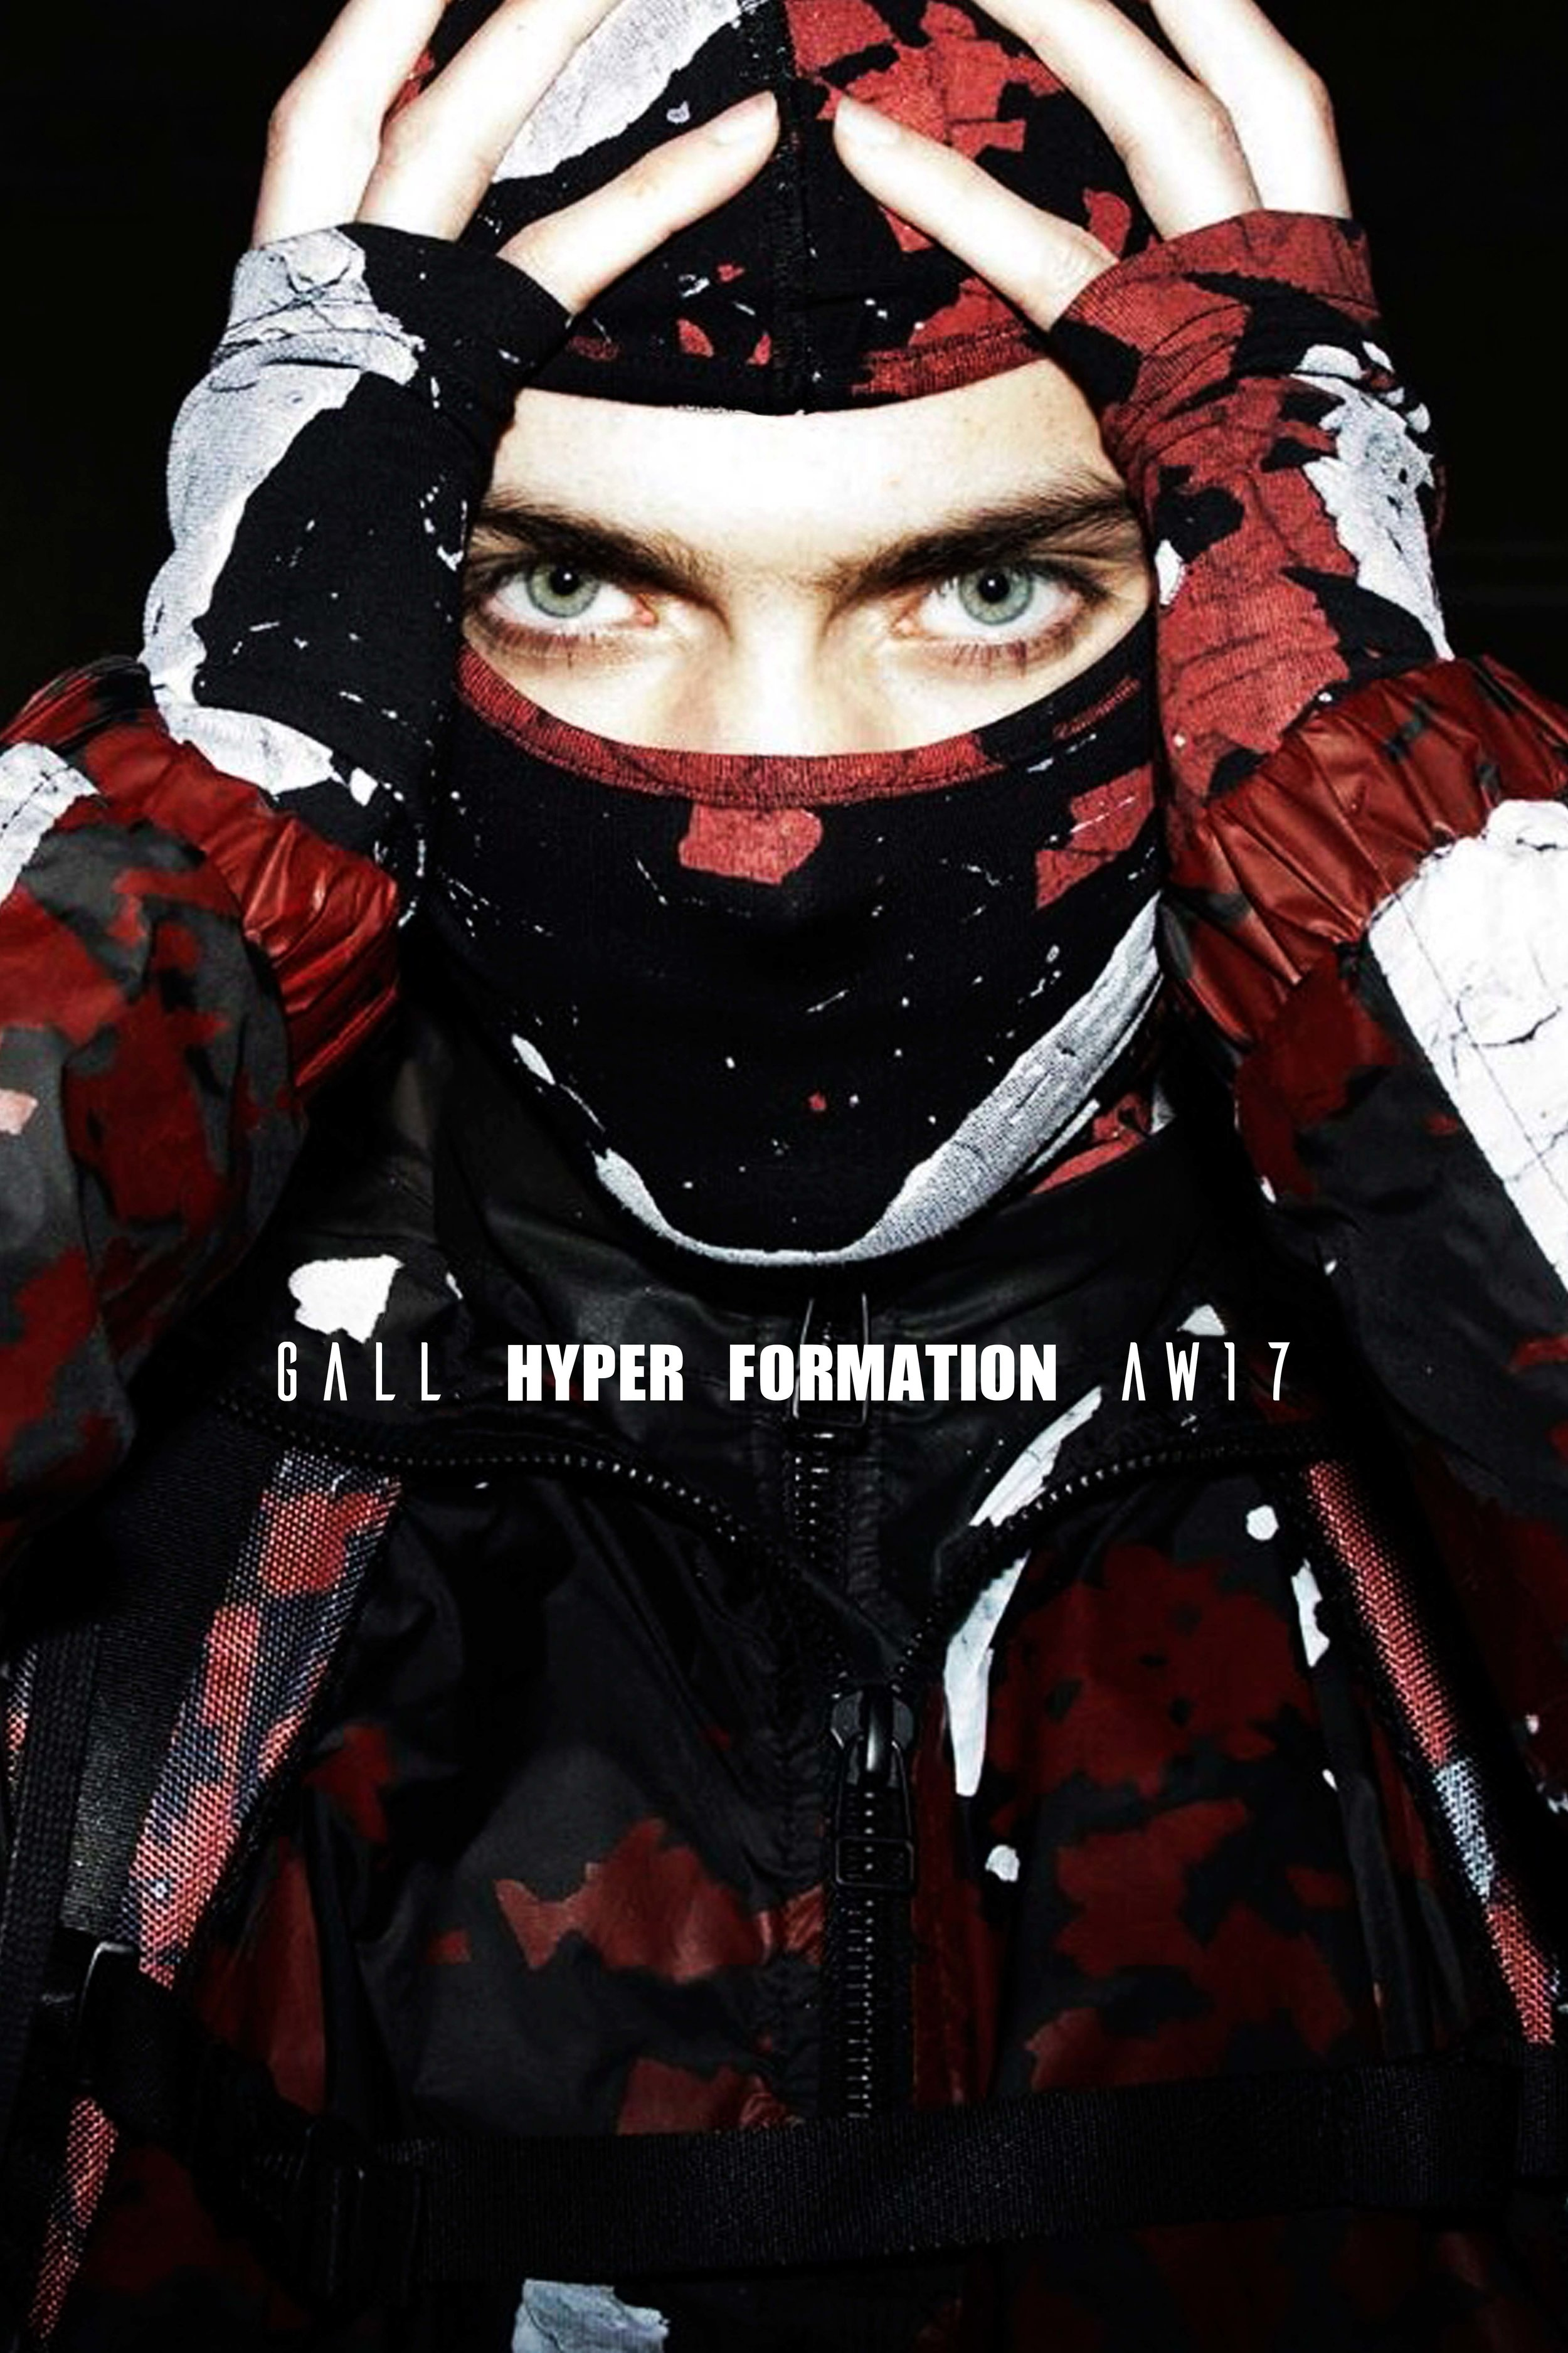 GALL_AW17_HYPERFORMATION_COVER2.jpg